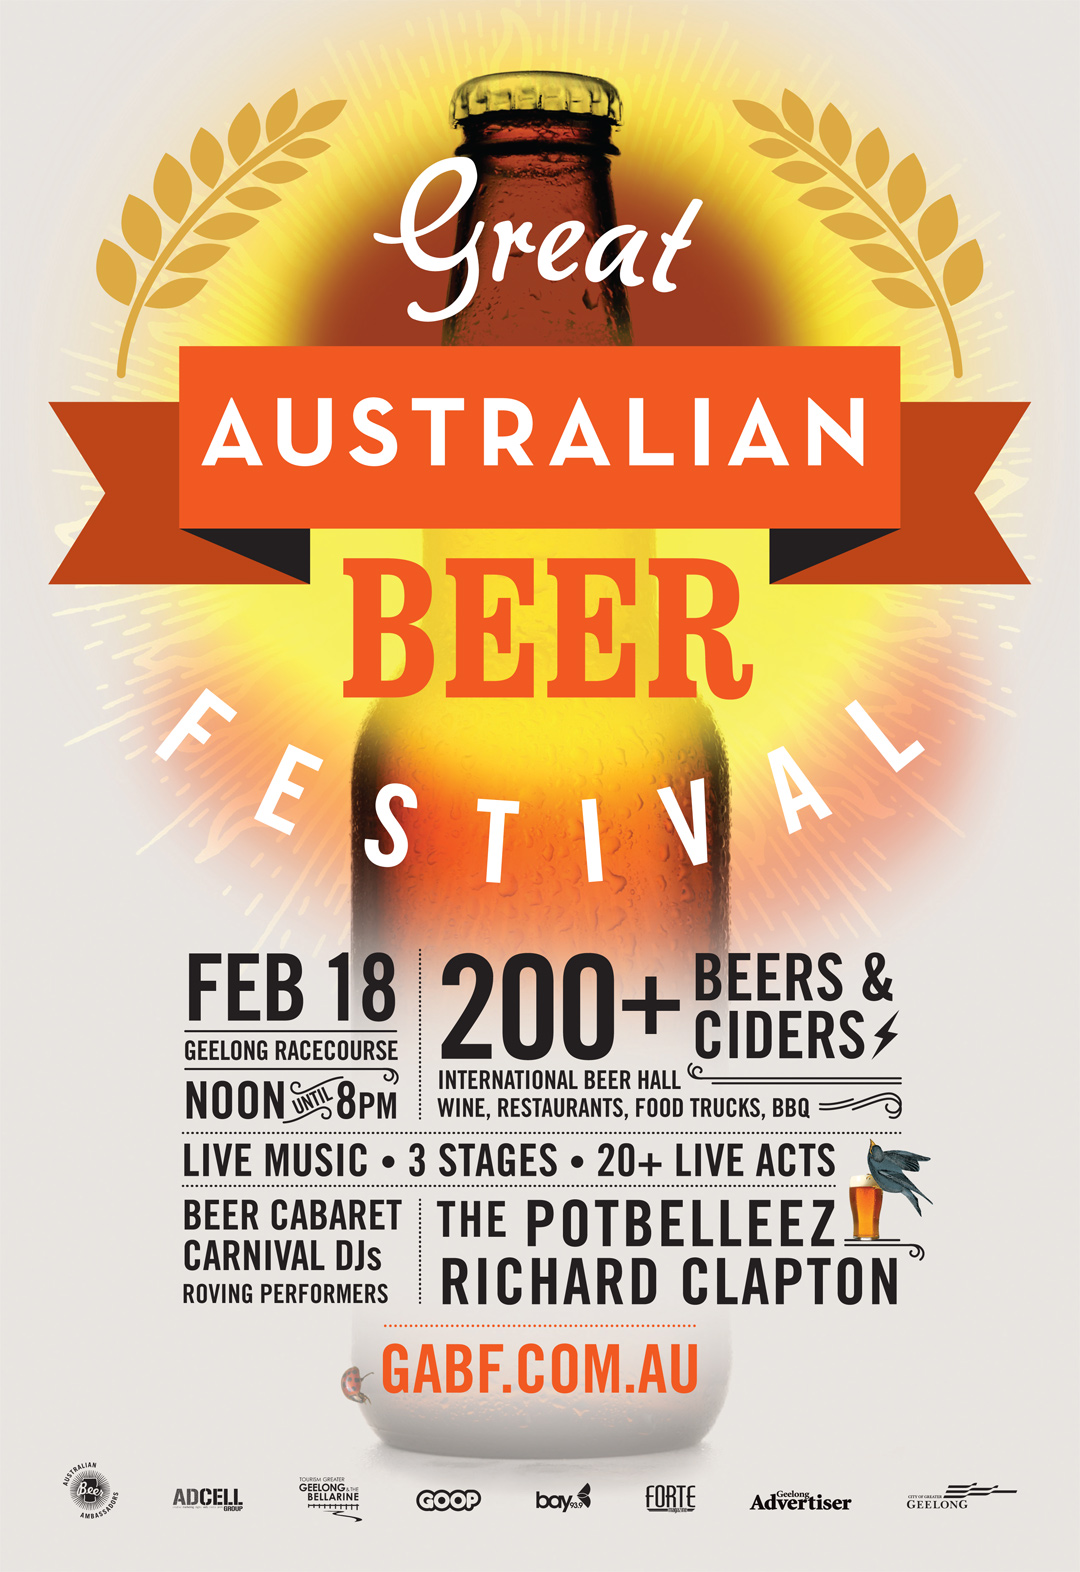 Great Australian Beer Festival - The Great Australian Beer Festival attracts 5,000 beer-lovers annually for an extravaganza of craft beer and local food. This branding project started as a logo and has grown into a complete identity, updating yearly to reflect the festival's vibe.